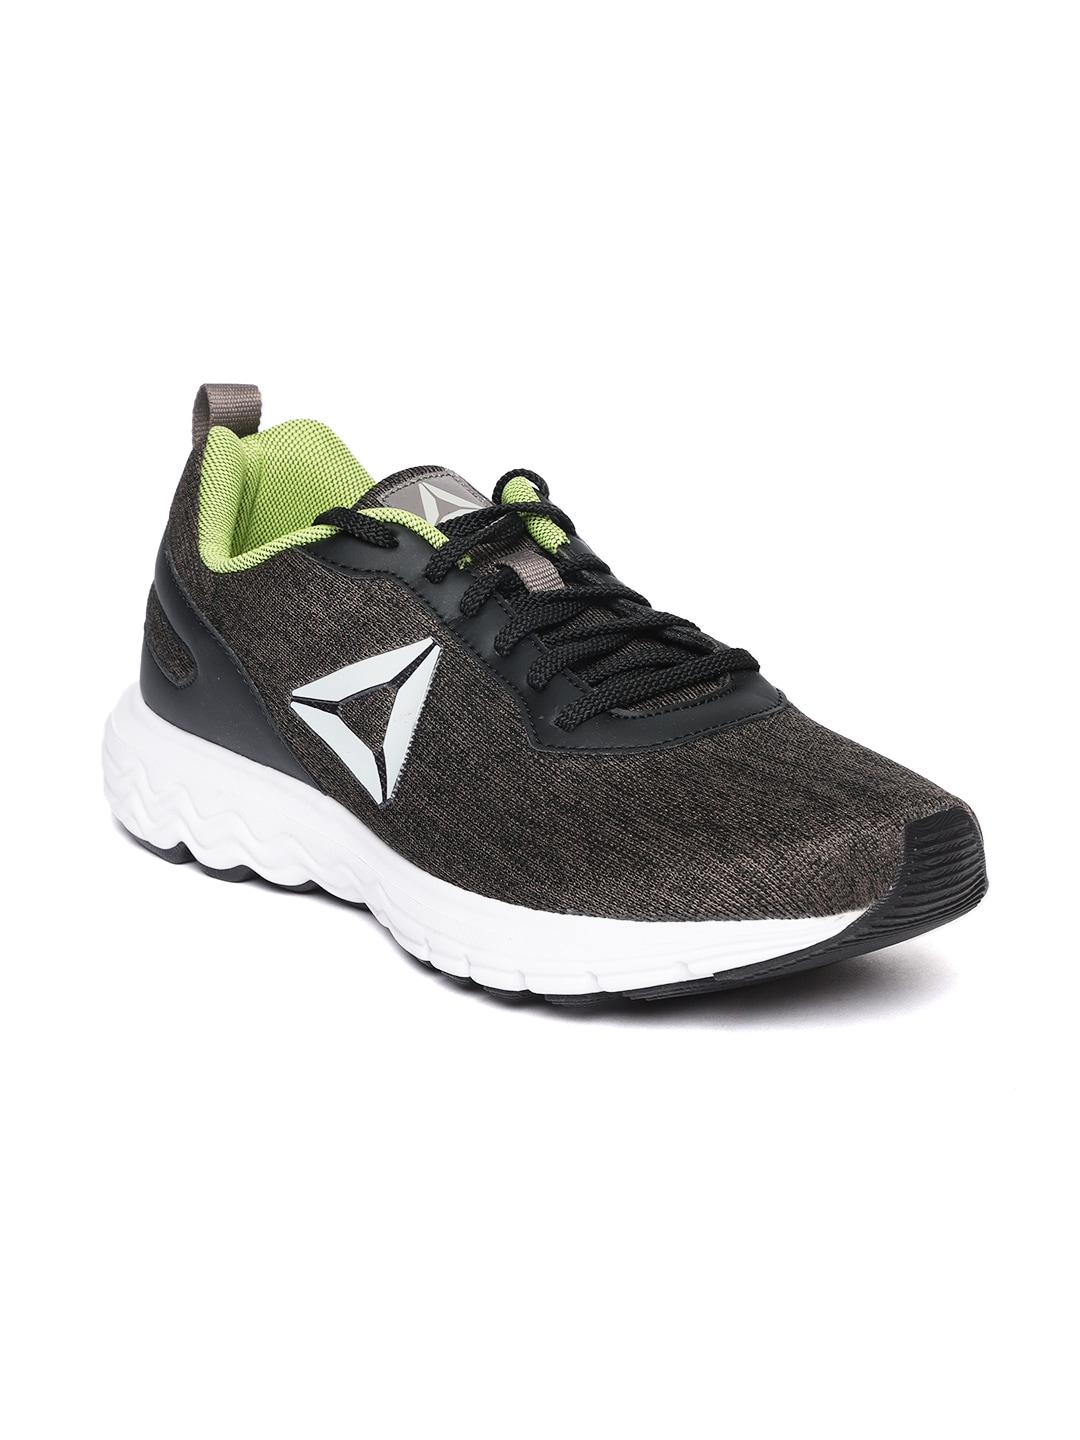 79f80c8b1e3 Reebok Doctor Shoe Sports Shoes - Buy Reebok Doctor Shoe Sports Shoes  online in India